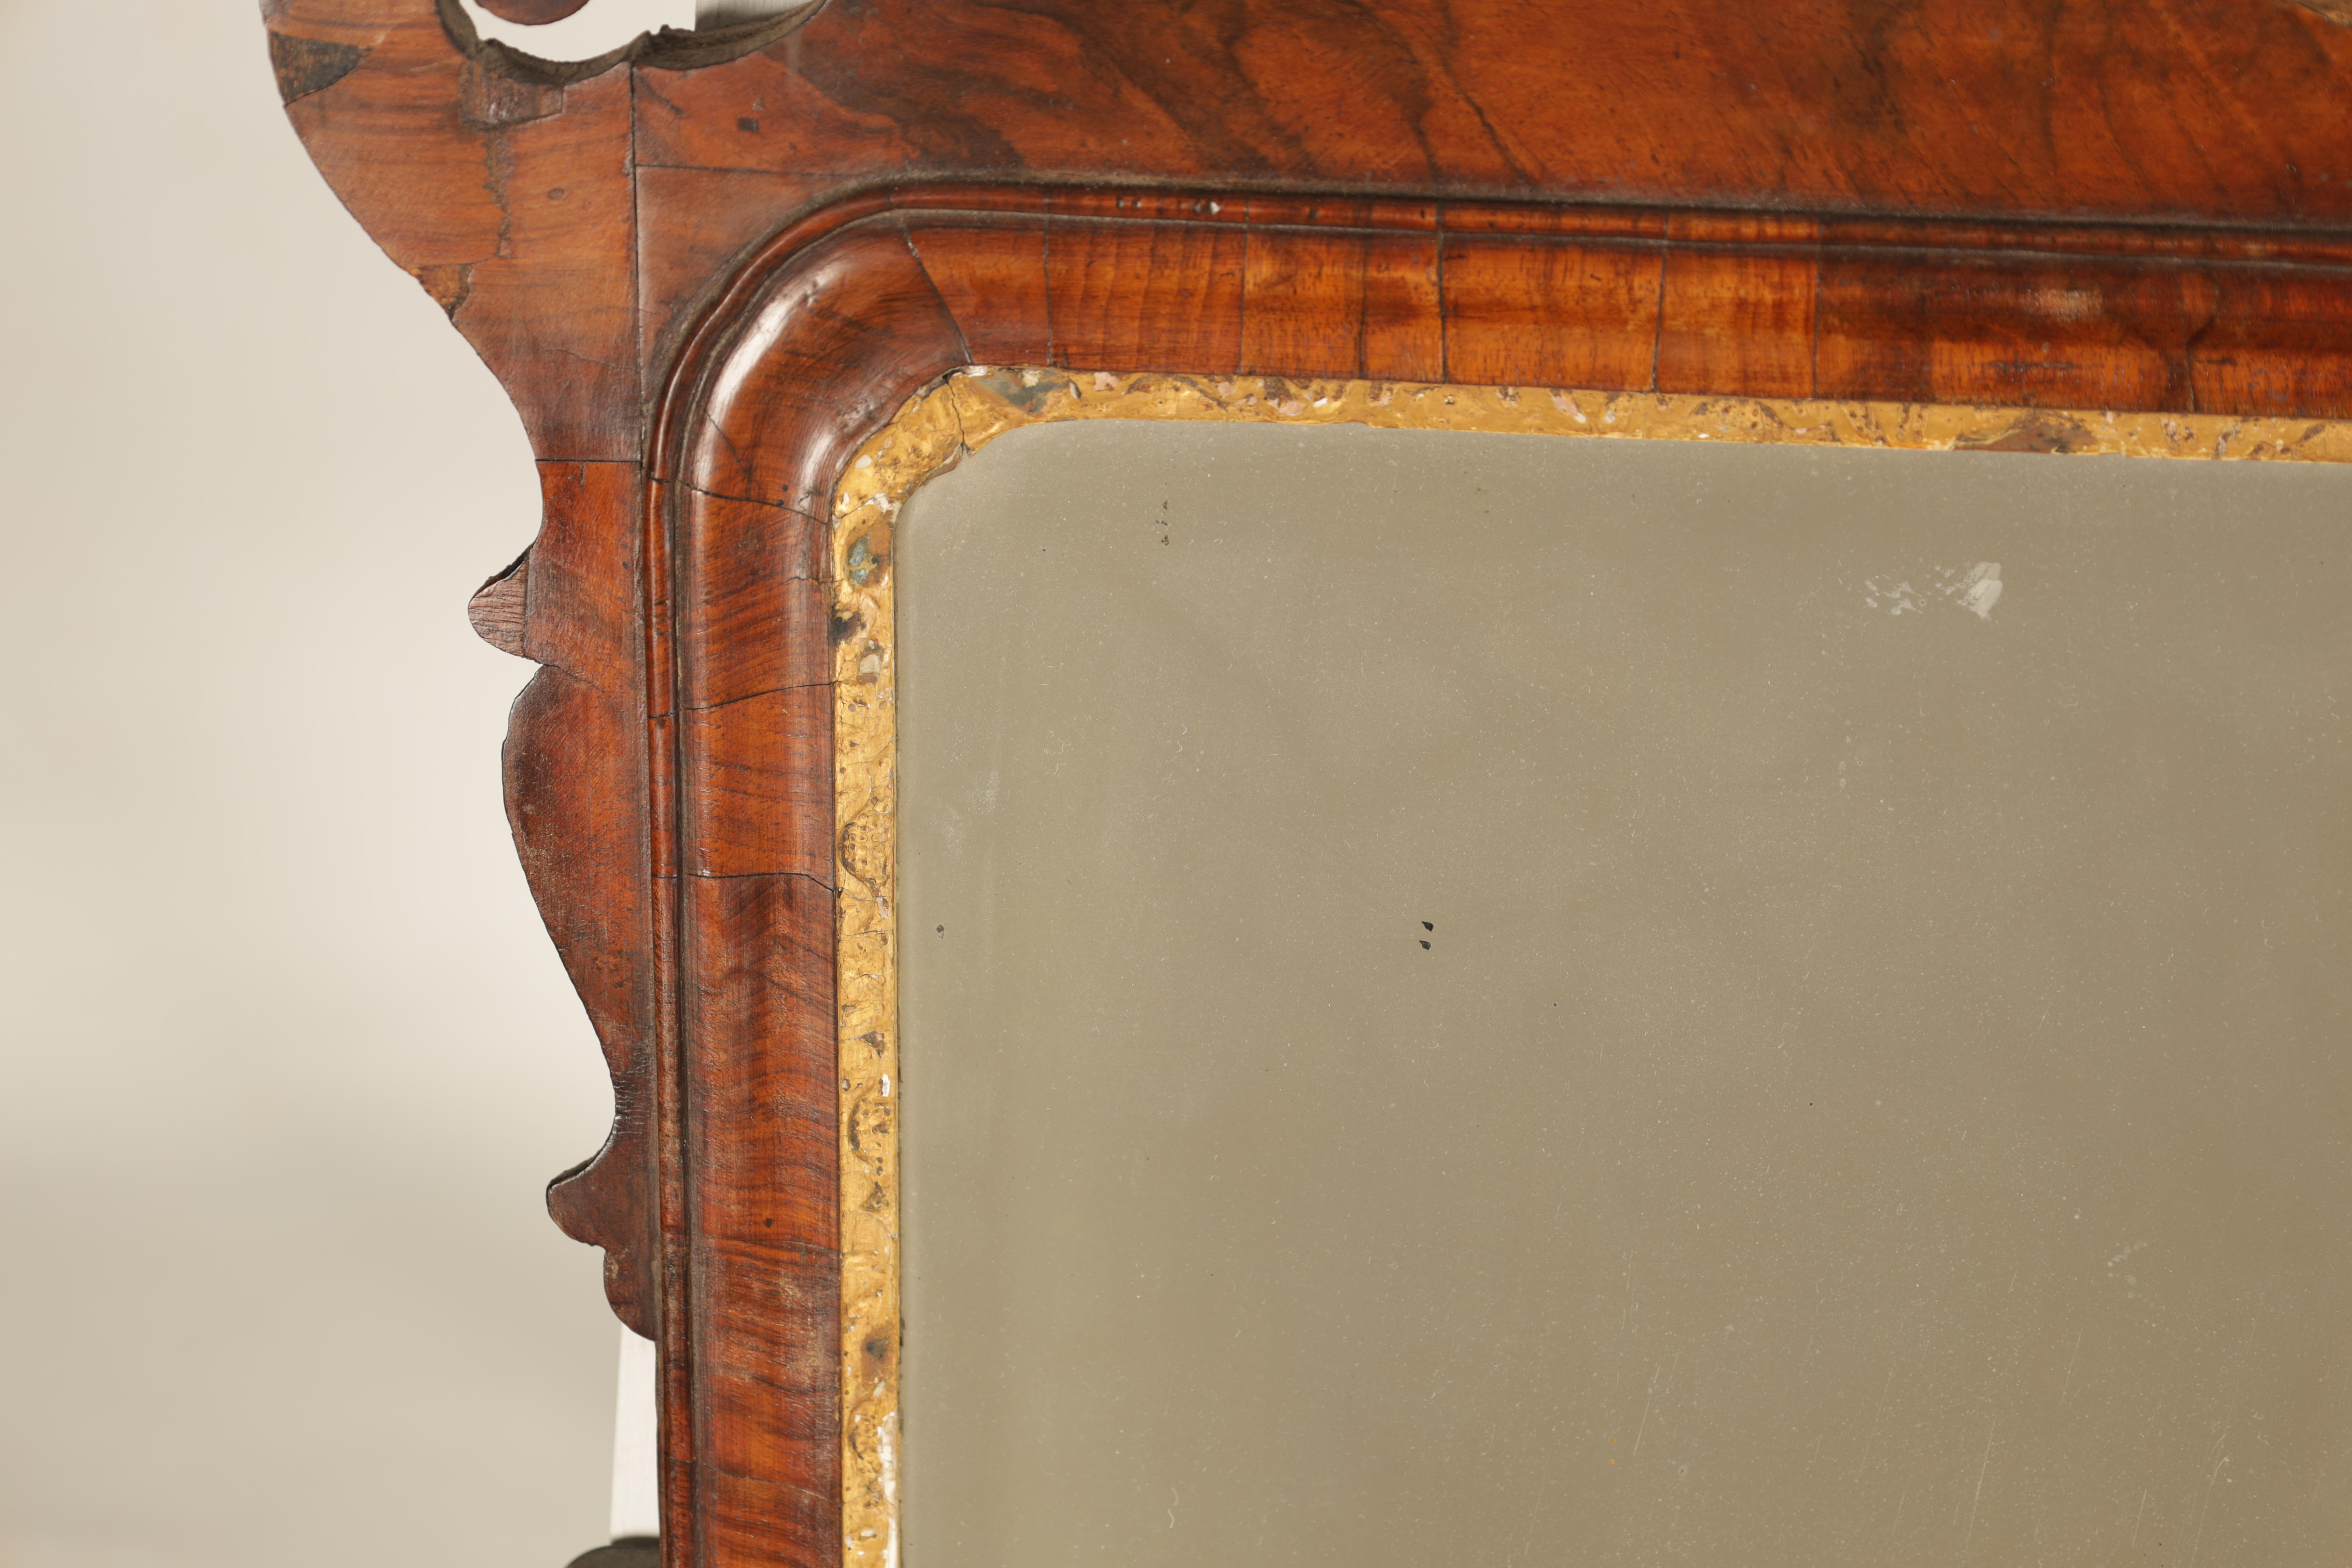 AN 18TH CENTURY WALNUT PIER MIRROR with shaped scrolled frame and gilt carved rococo pediment, the - Image 4 of 5